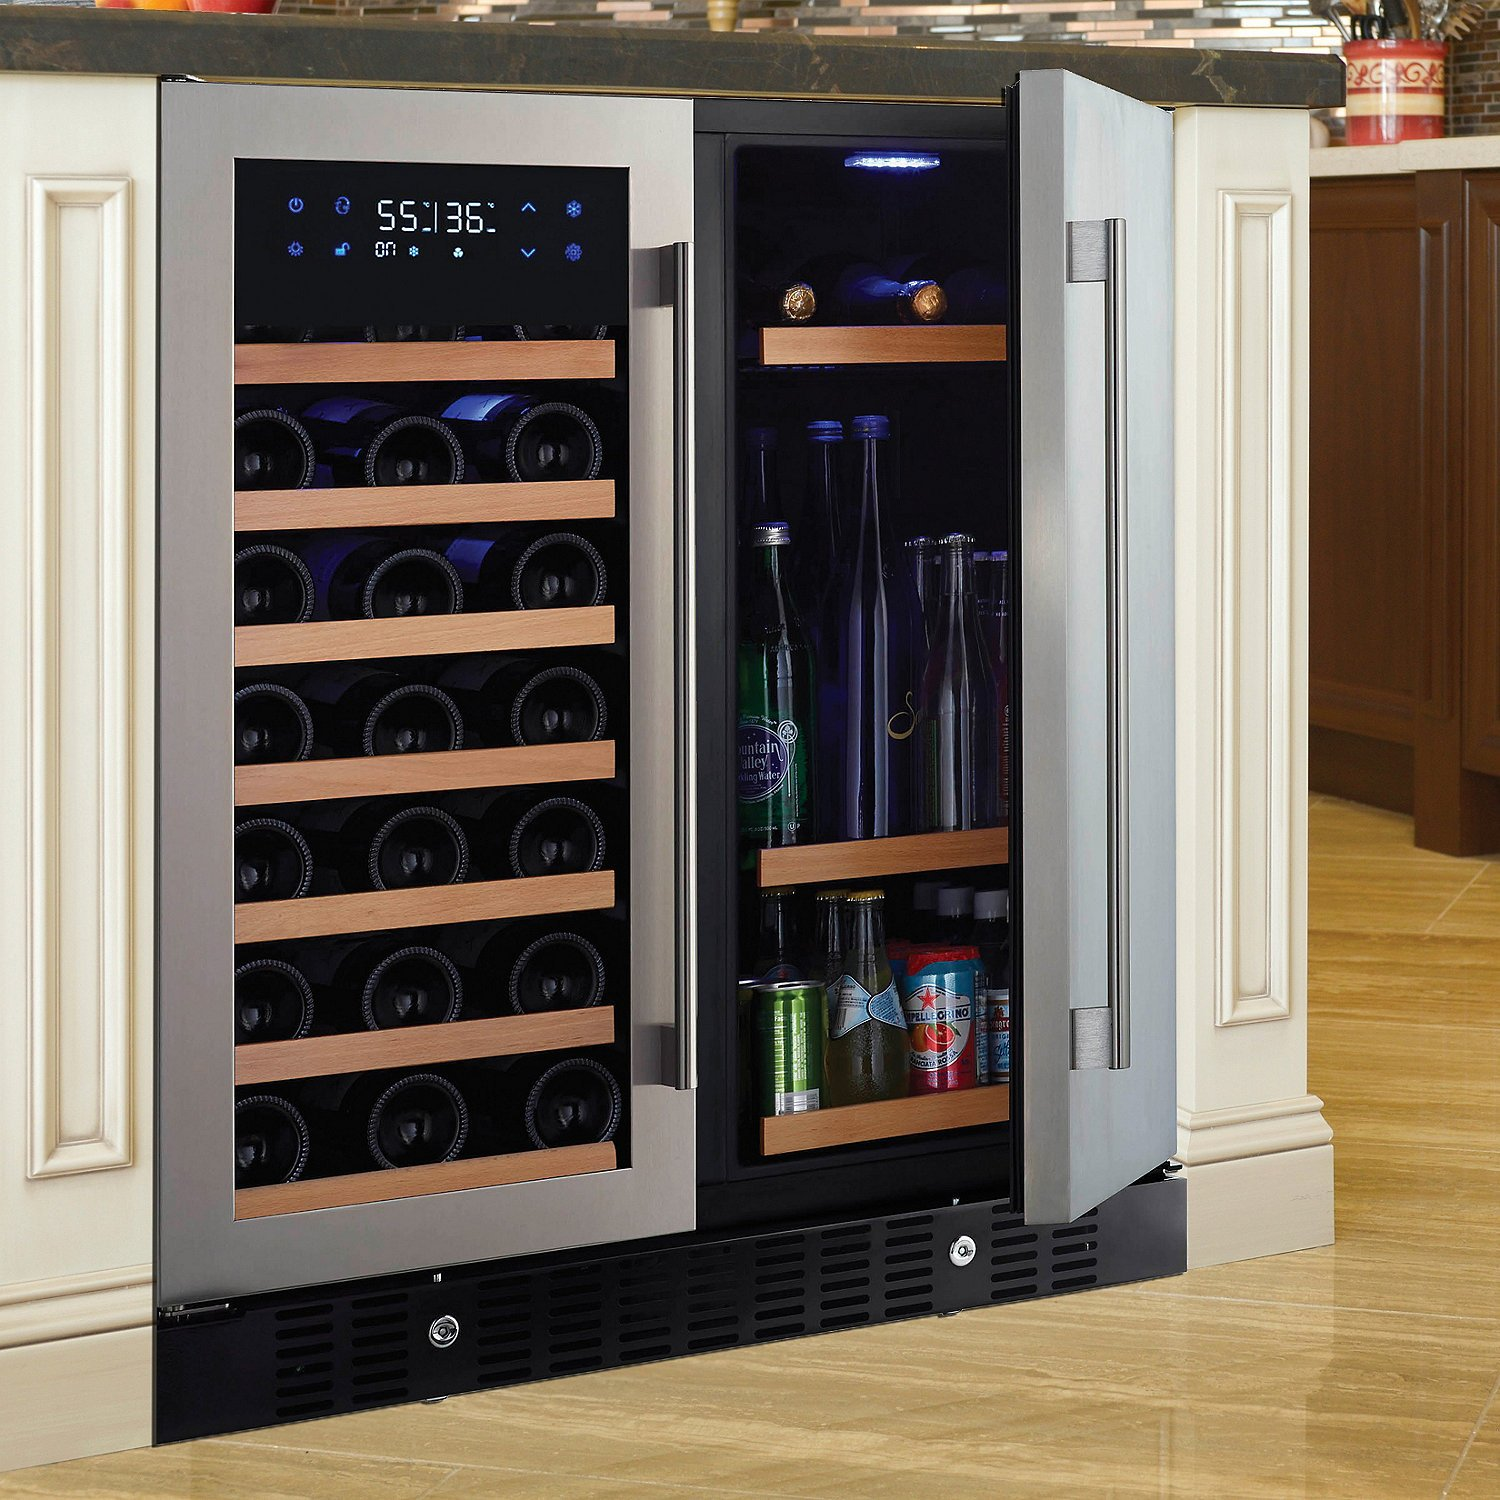 N'FINITY PRO HDX by Wine Enthusiast Wine & Beverage Center - Holds 90 Cans & 35 Wine Bottles - Freestanding or Built-In Wine Refrigerator